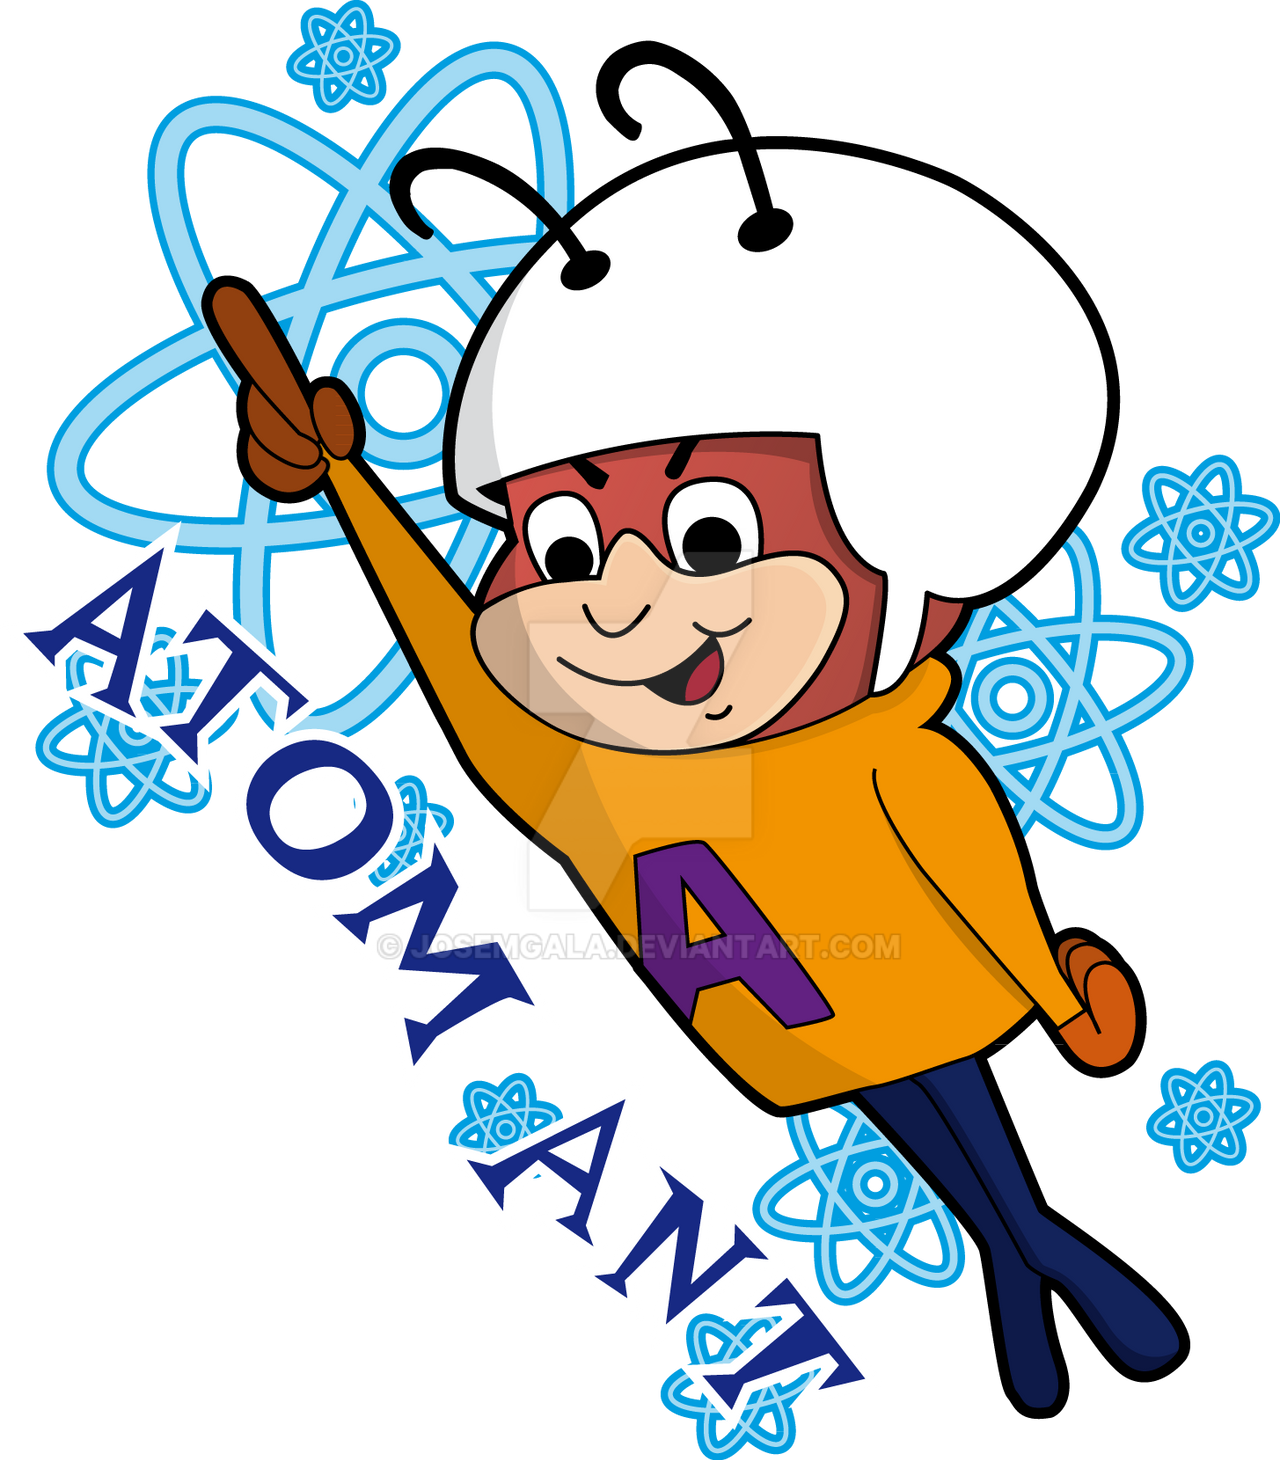 atom ant by josemgala on deviantart free clipart softball pictures free softball clipart images